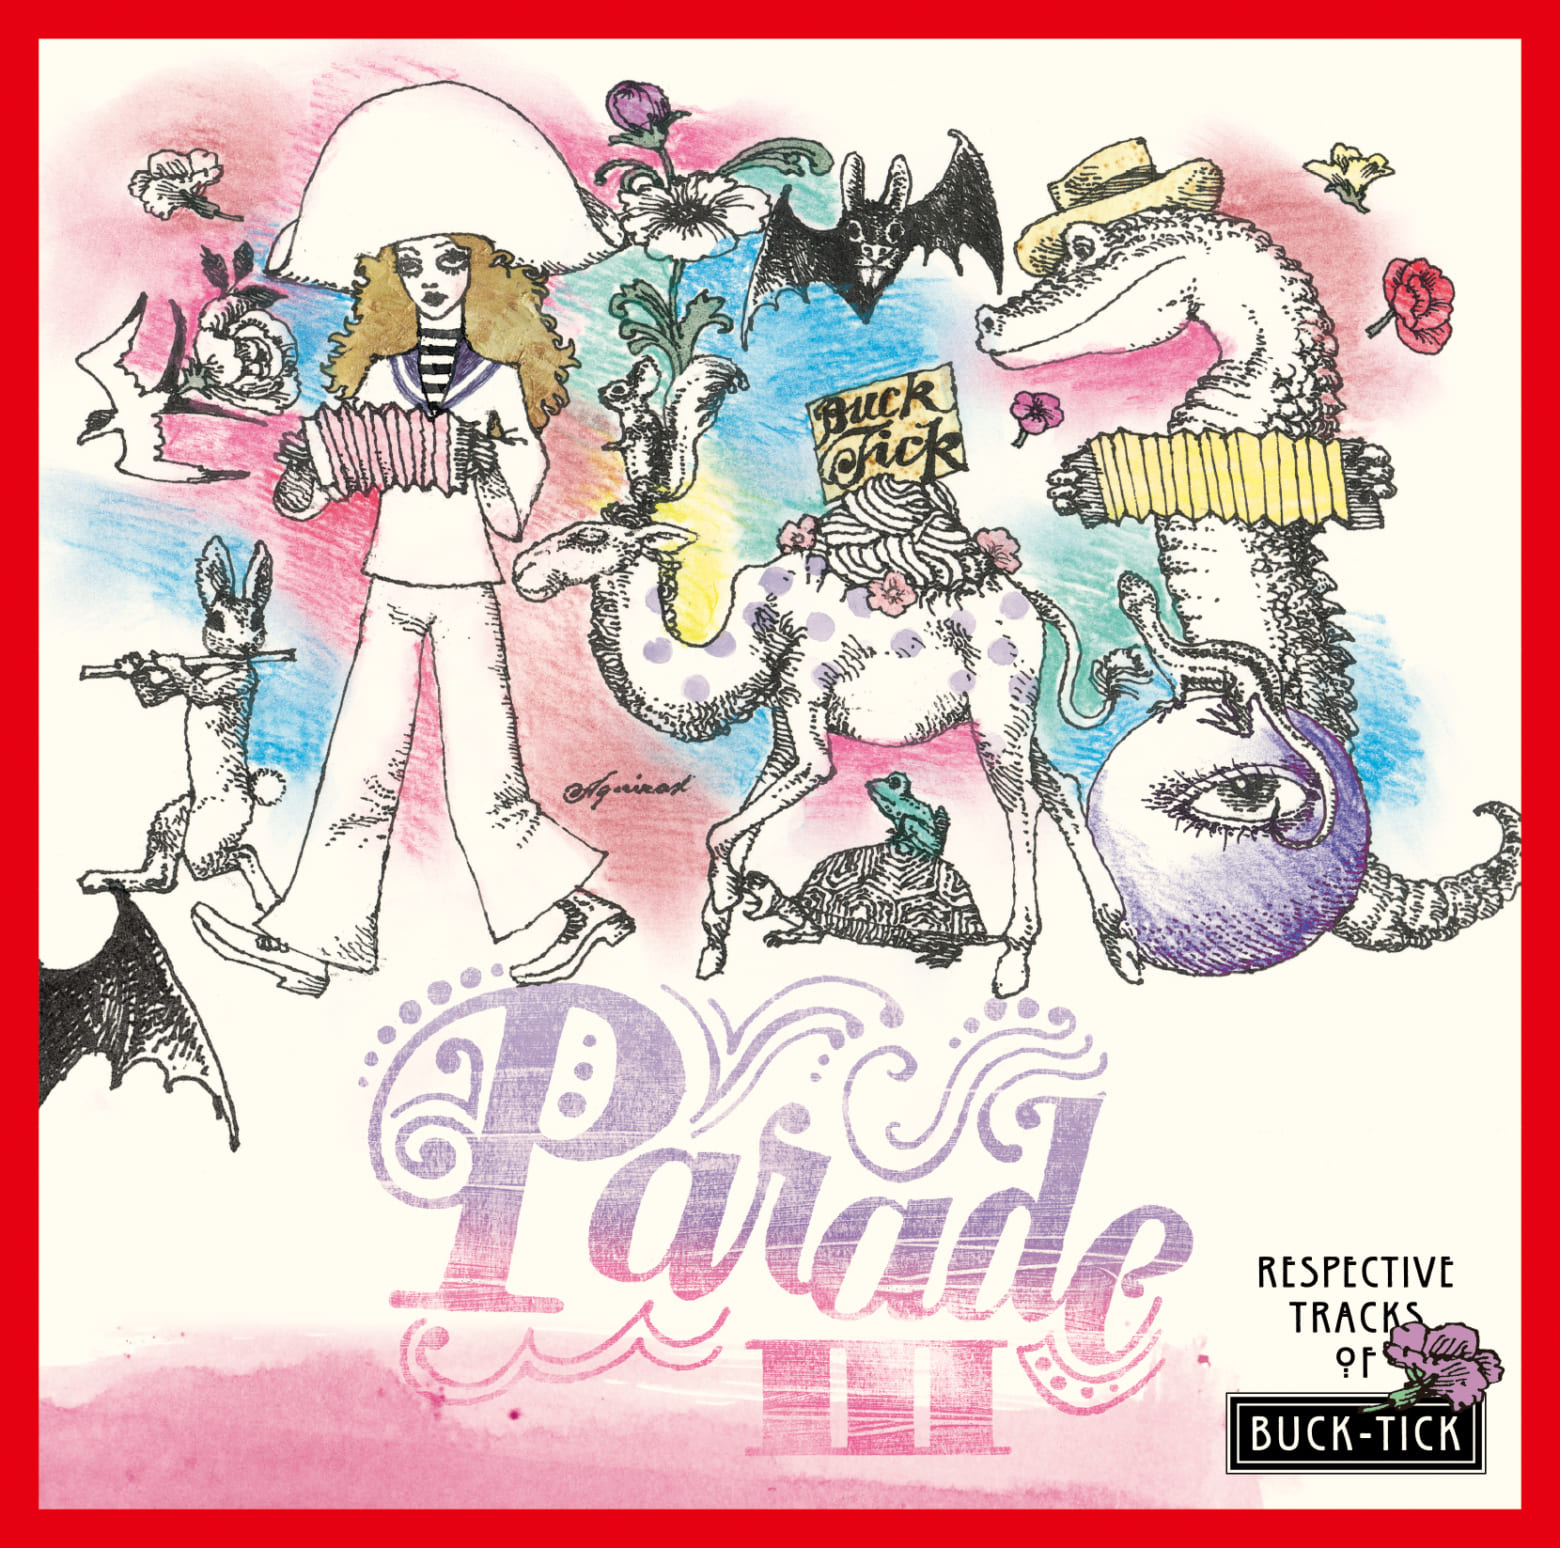 「PARADE III ~RESPECTIVE TRACKS OF BUCK-TICK~」